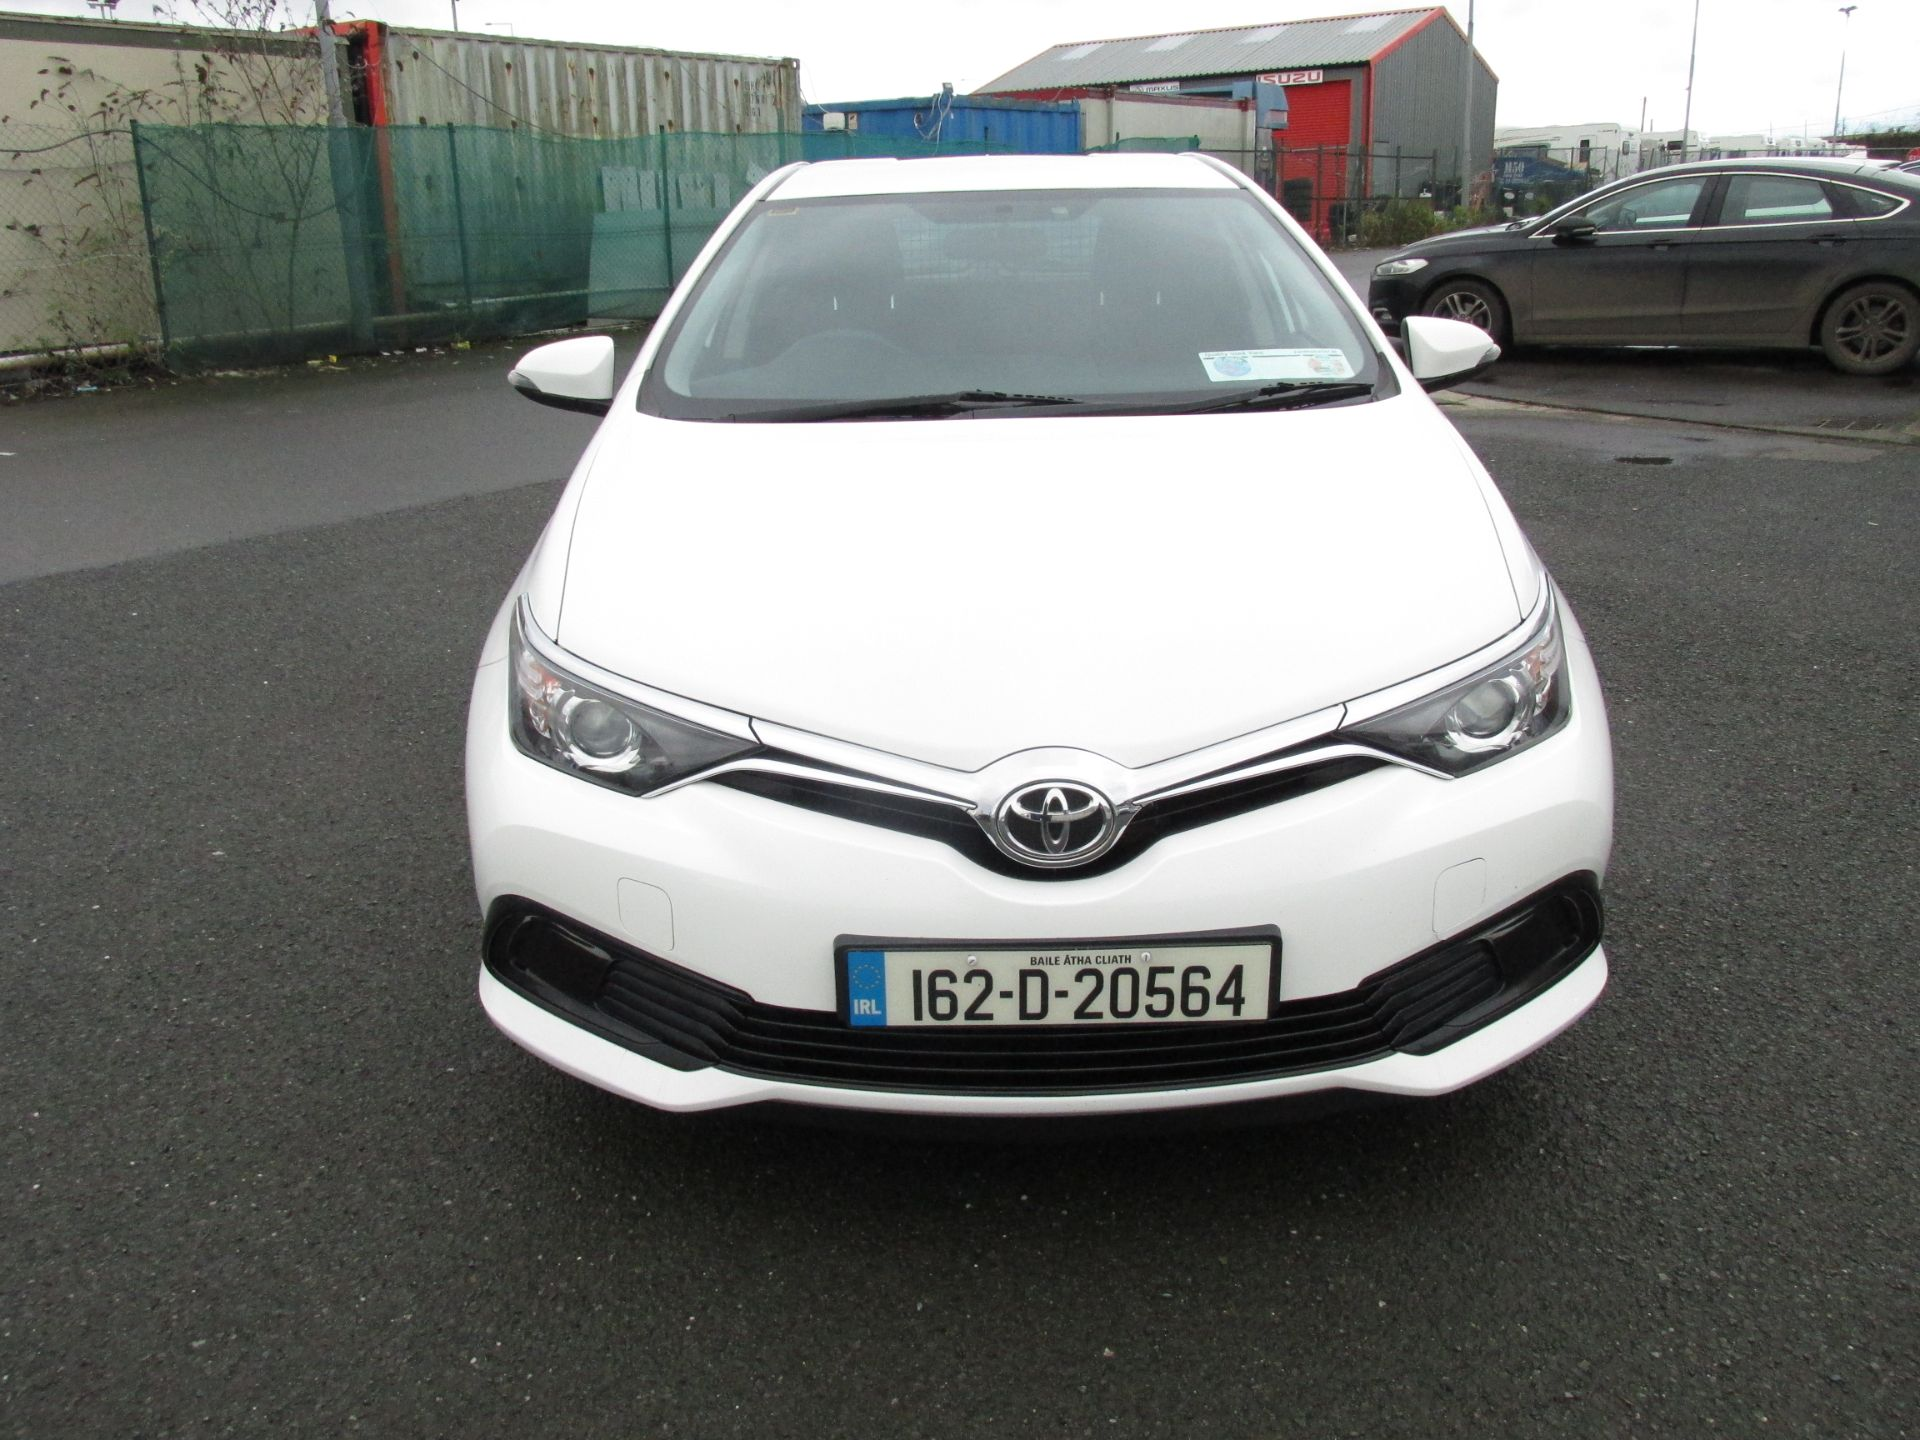 2016 Toyota Auris 1.4d-4d Terra 4DR click and deliver call sales for more info (162D20564) Image 2